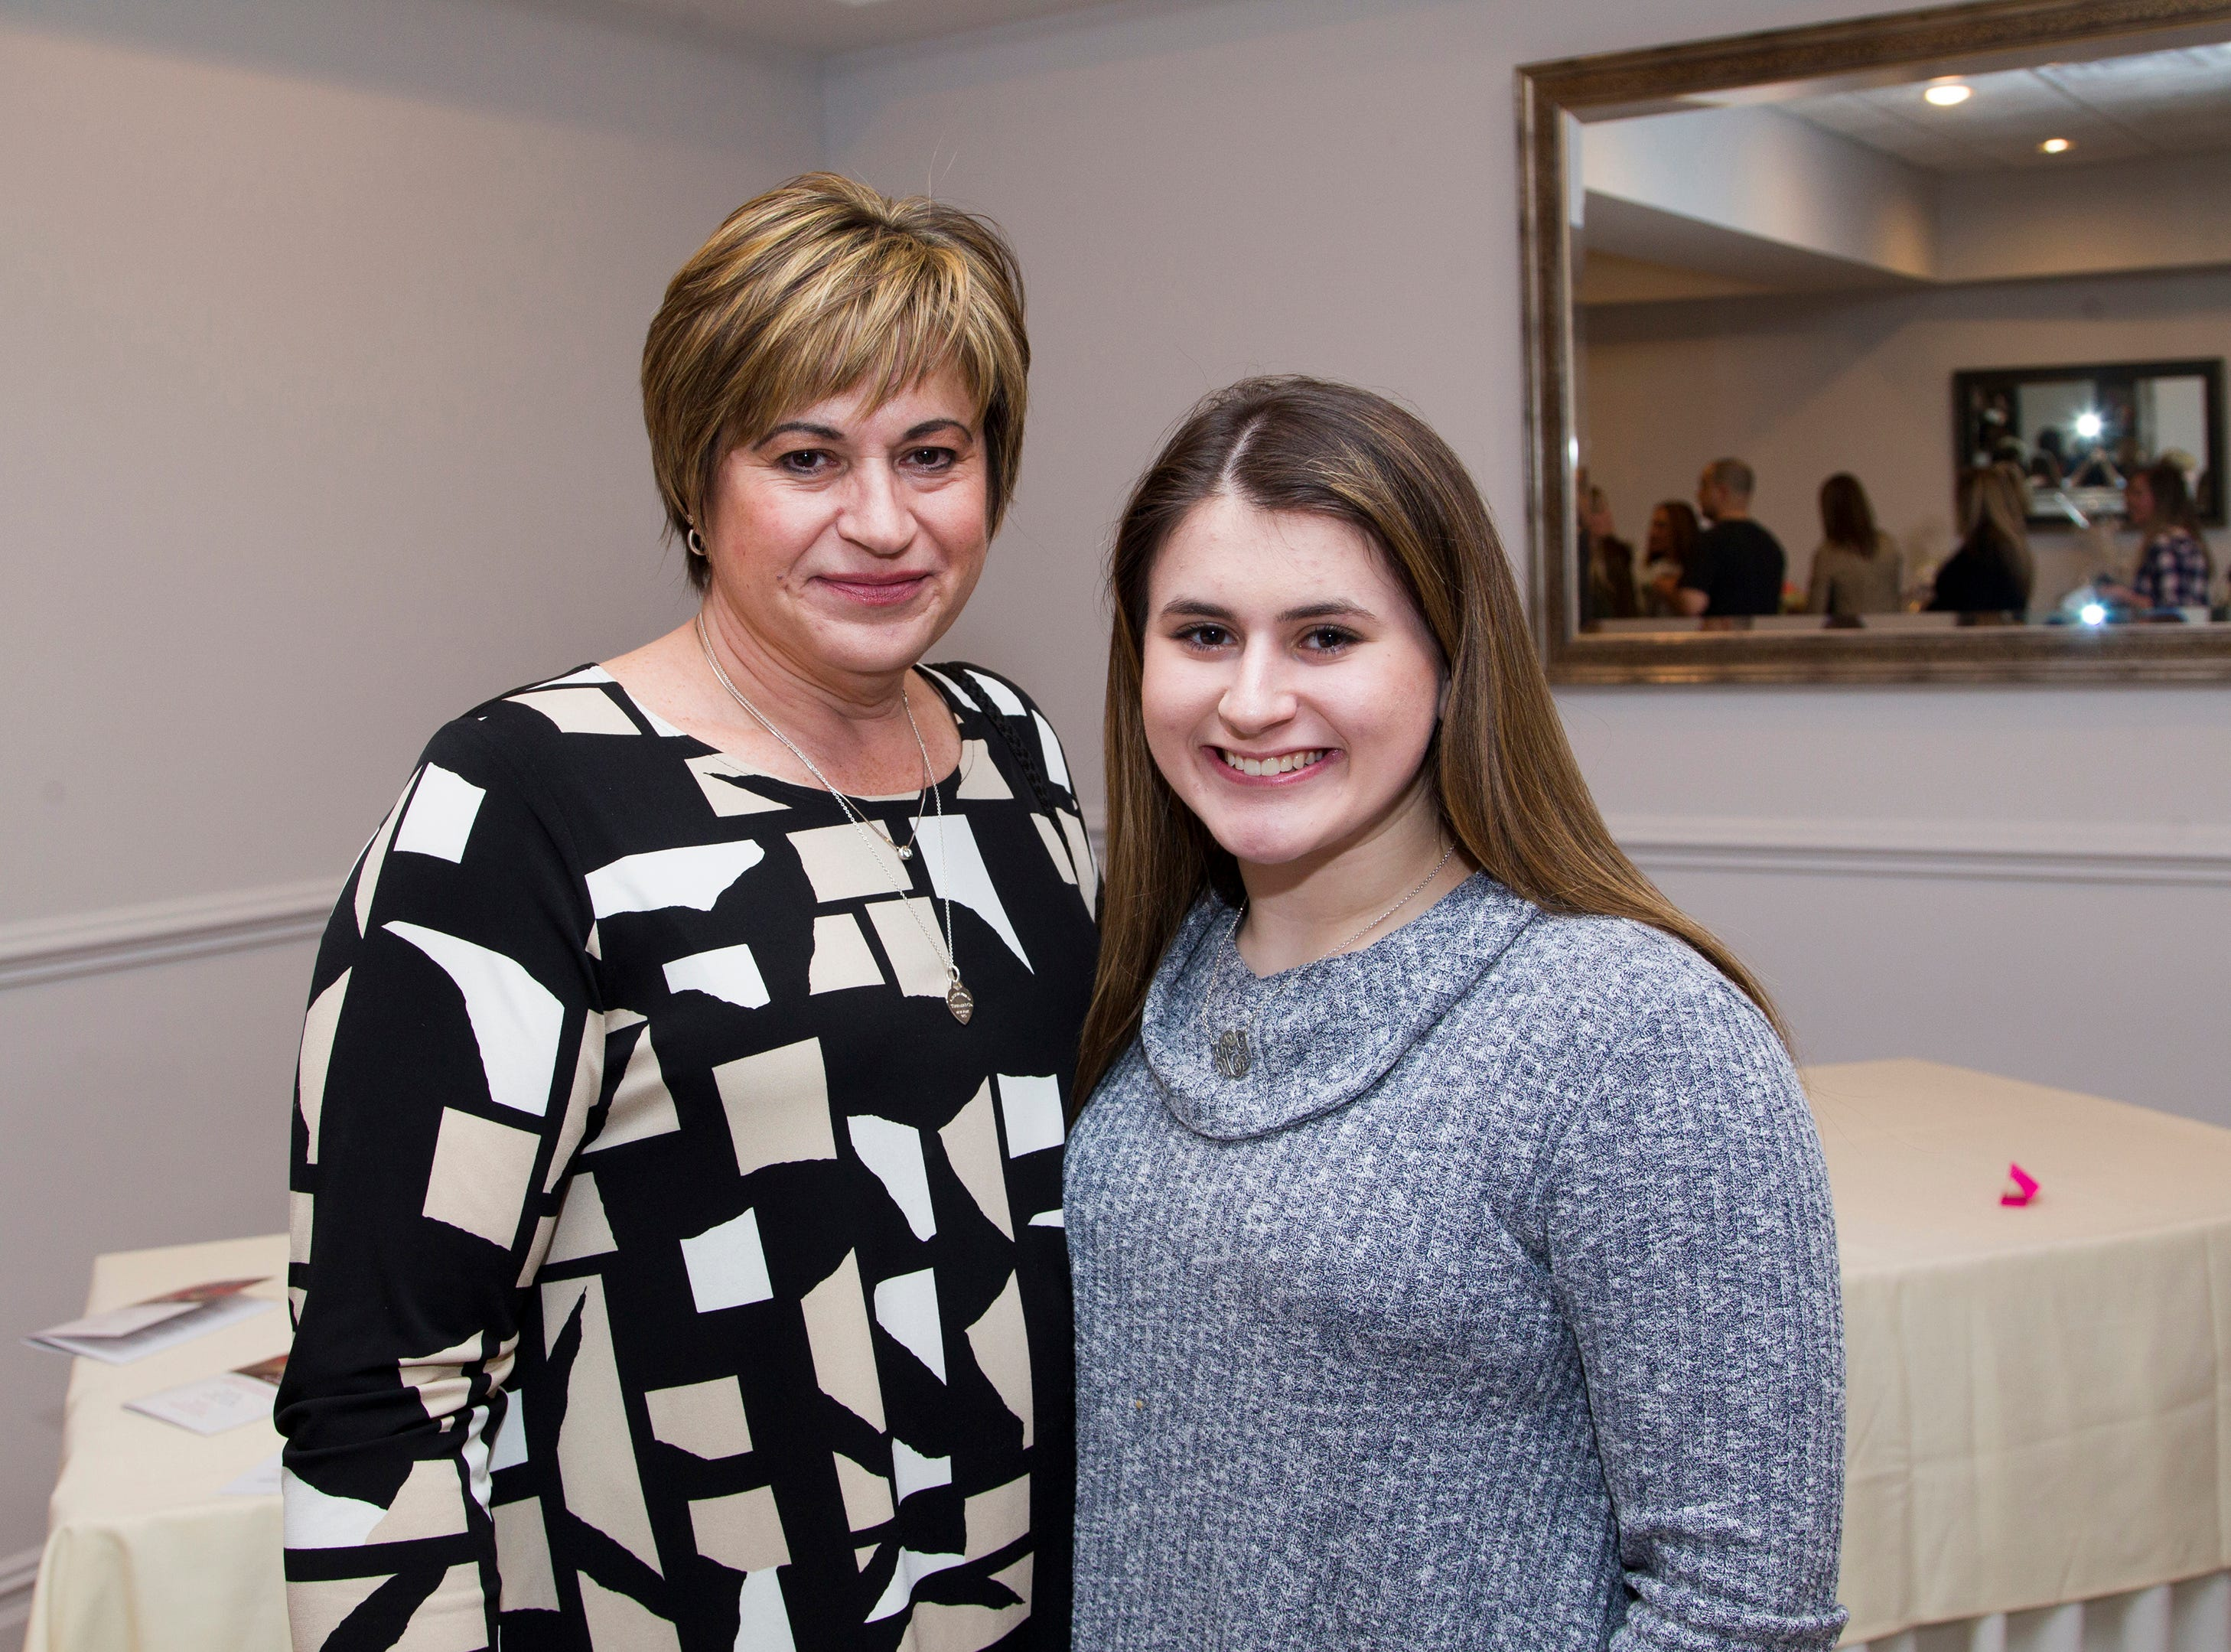 Kacie and Kara Centineo. Waldwick High School held its Project Graduation Fashion Show at Macaluso's in Hawthorne. 03/13/2019